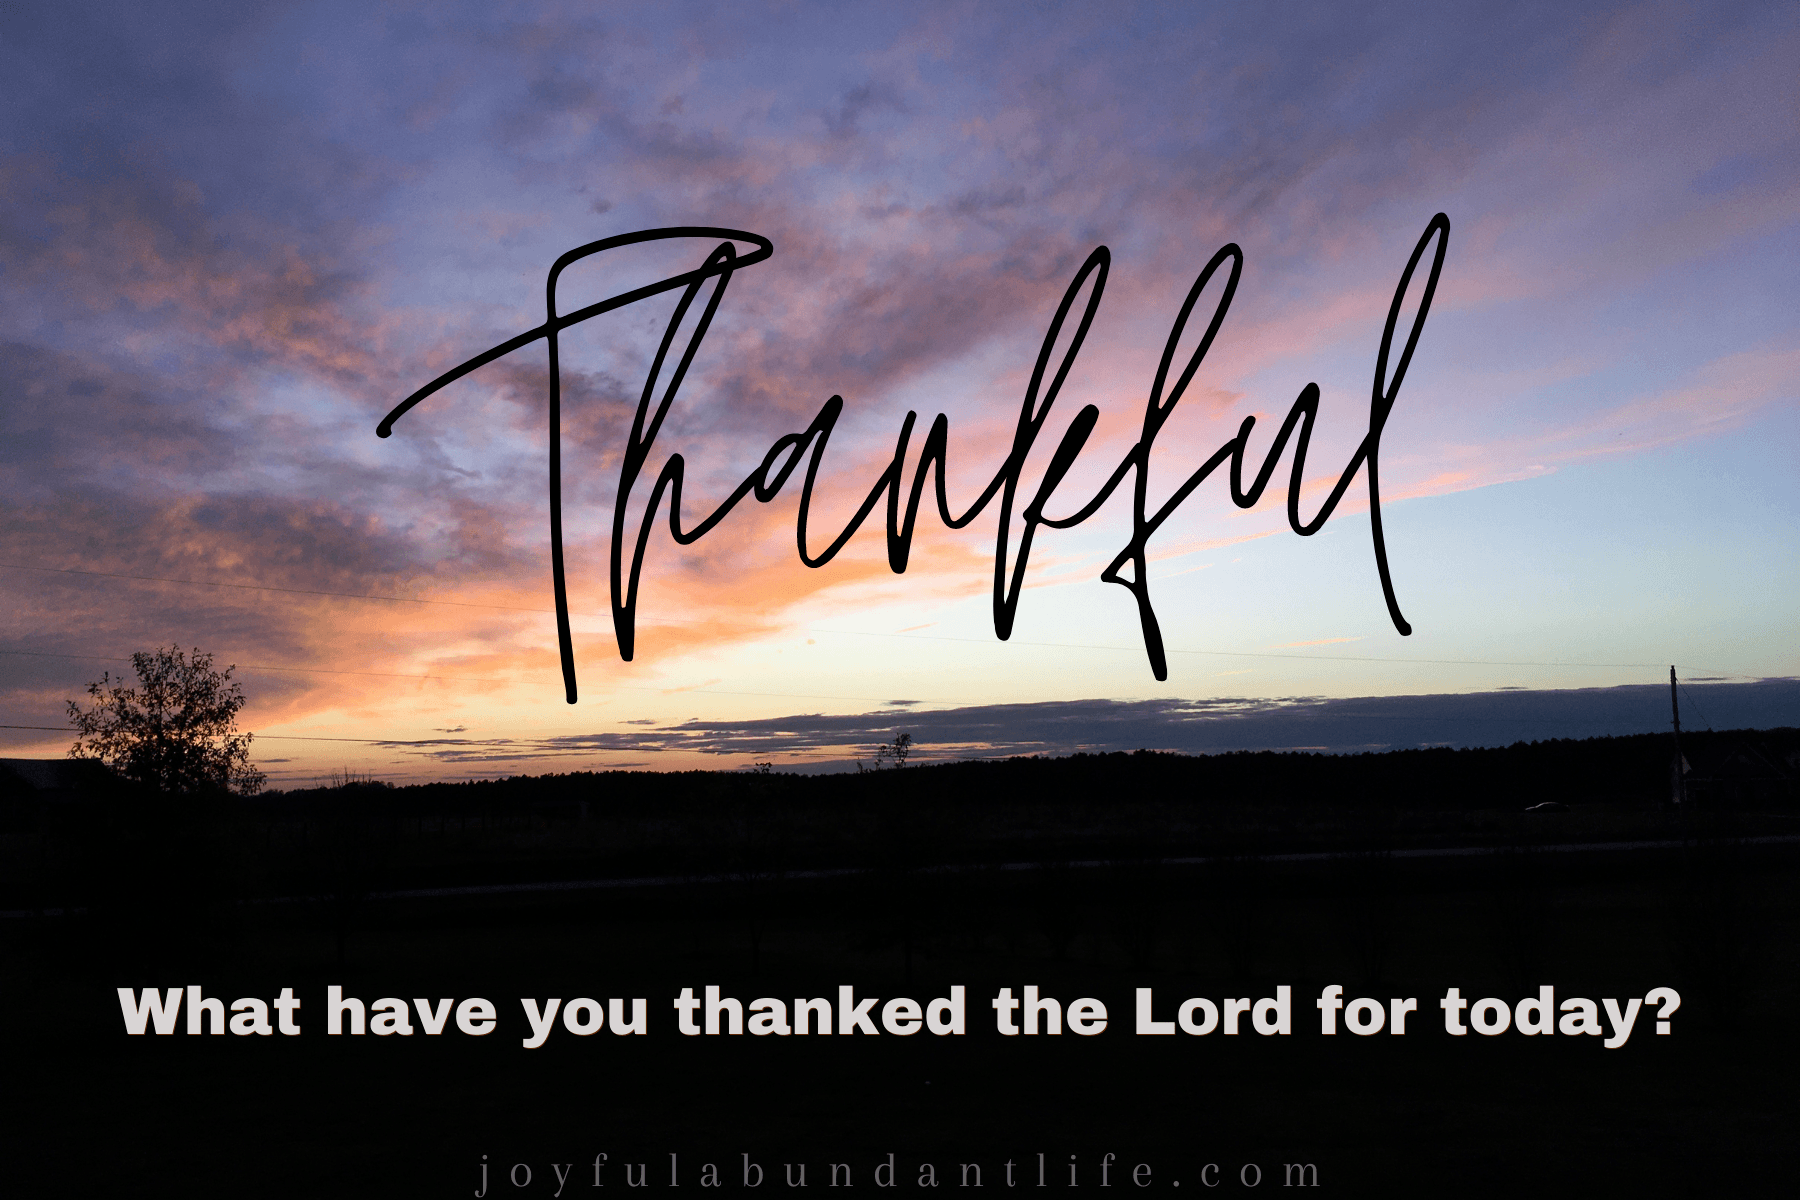 Be Thankful - God never changes